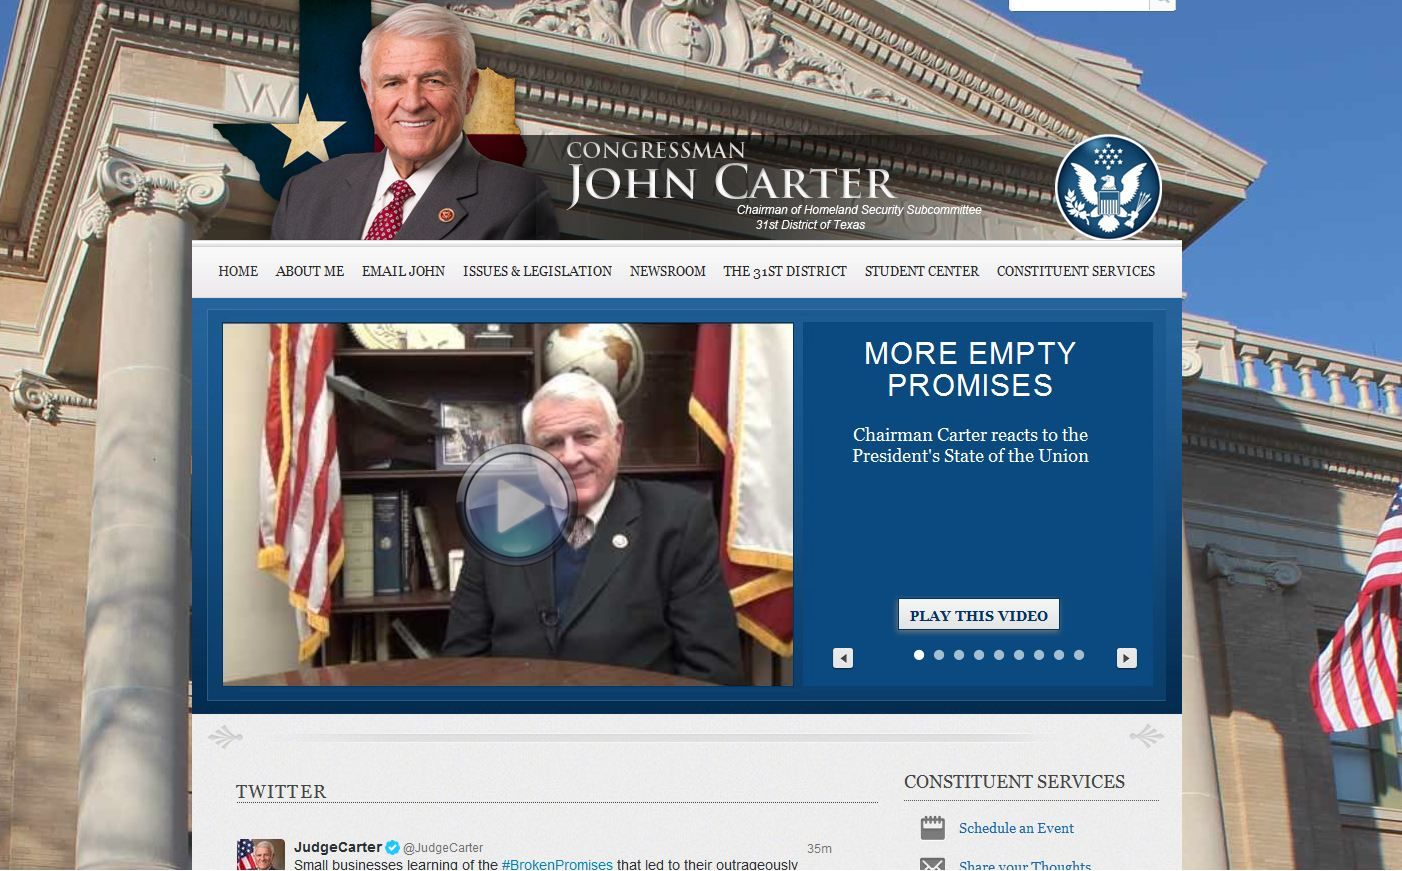 http://carter.house.gov/#dialog